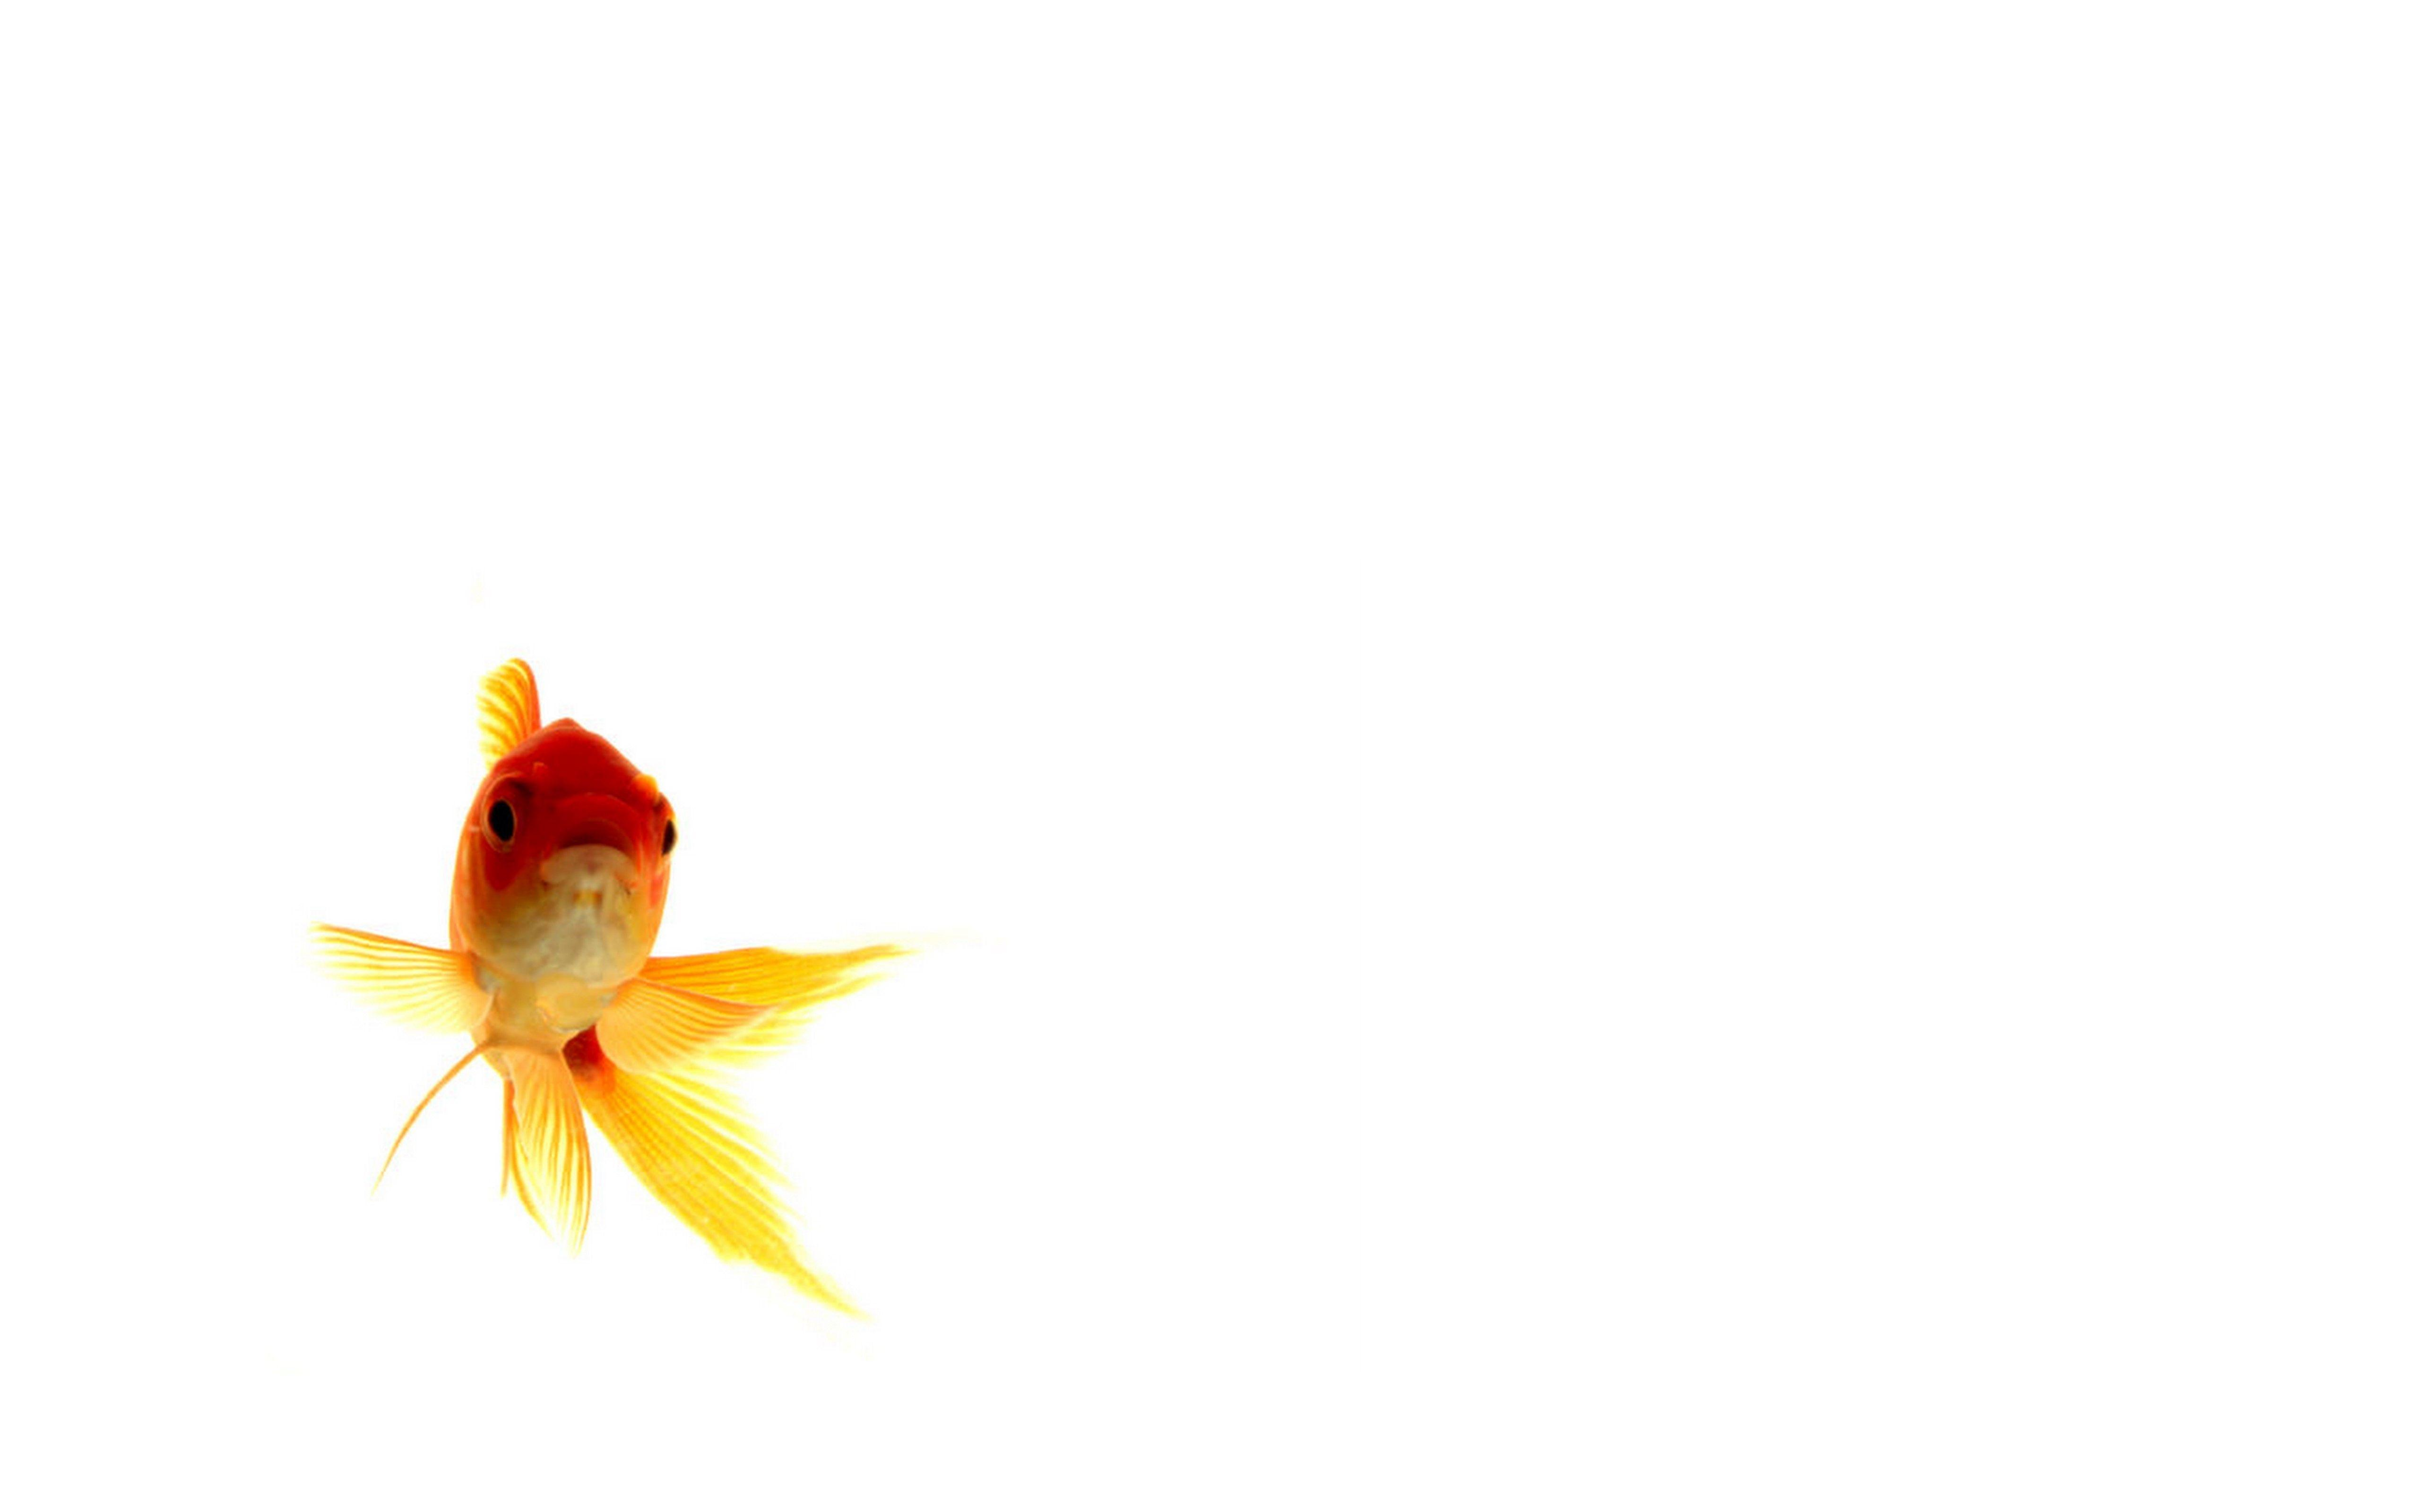 Goldfish Wallpapers Hd